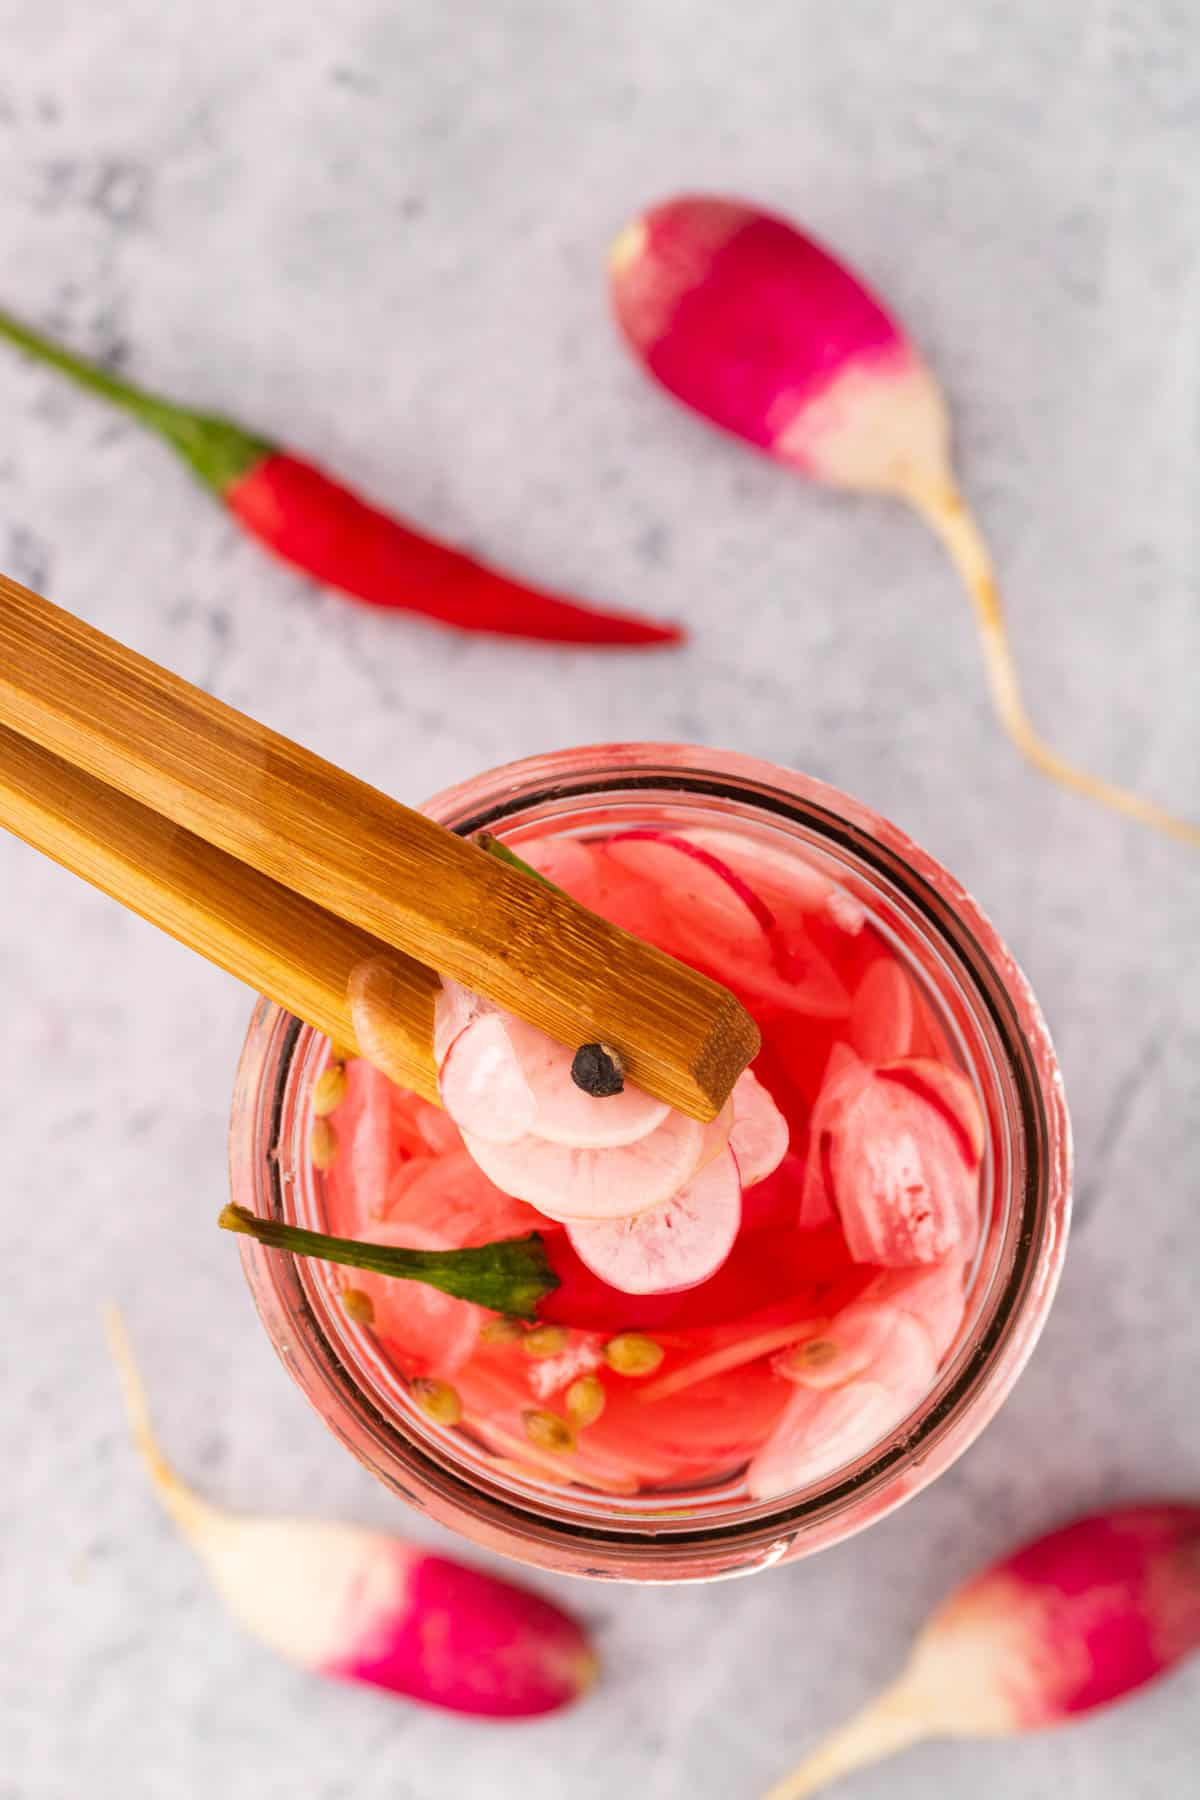 A pair of wooden tongs grabbing quick pickled radishes out of a jar.